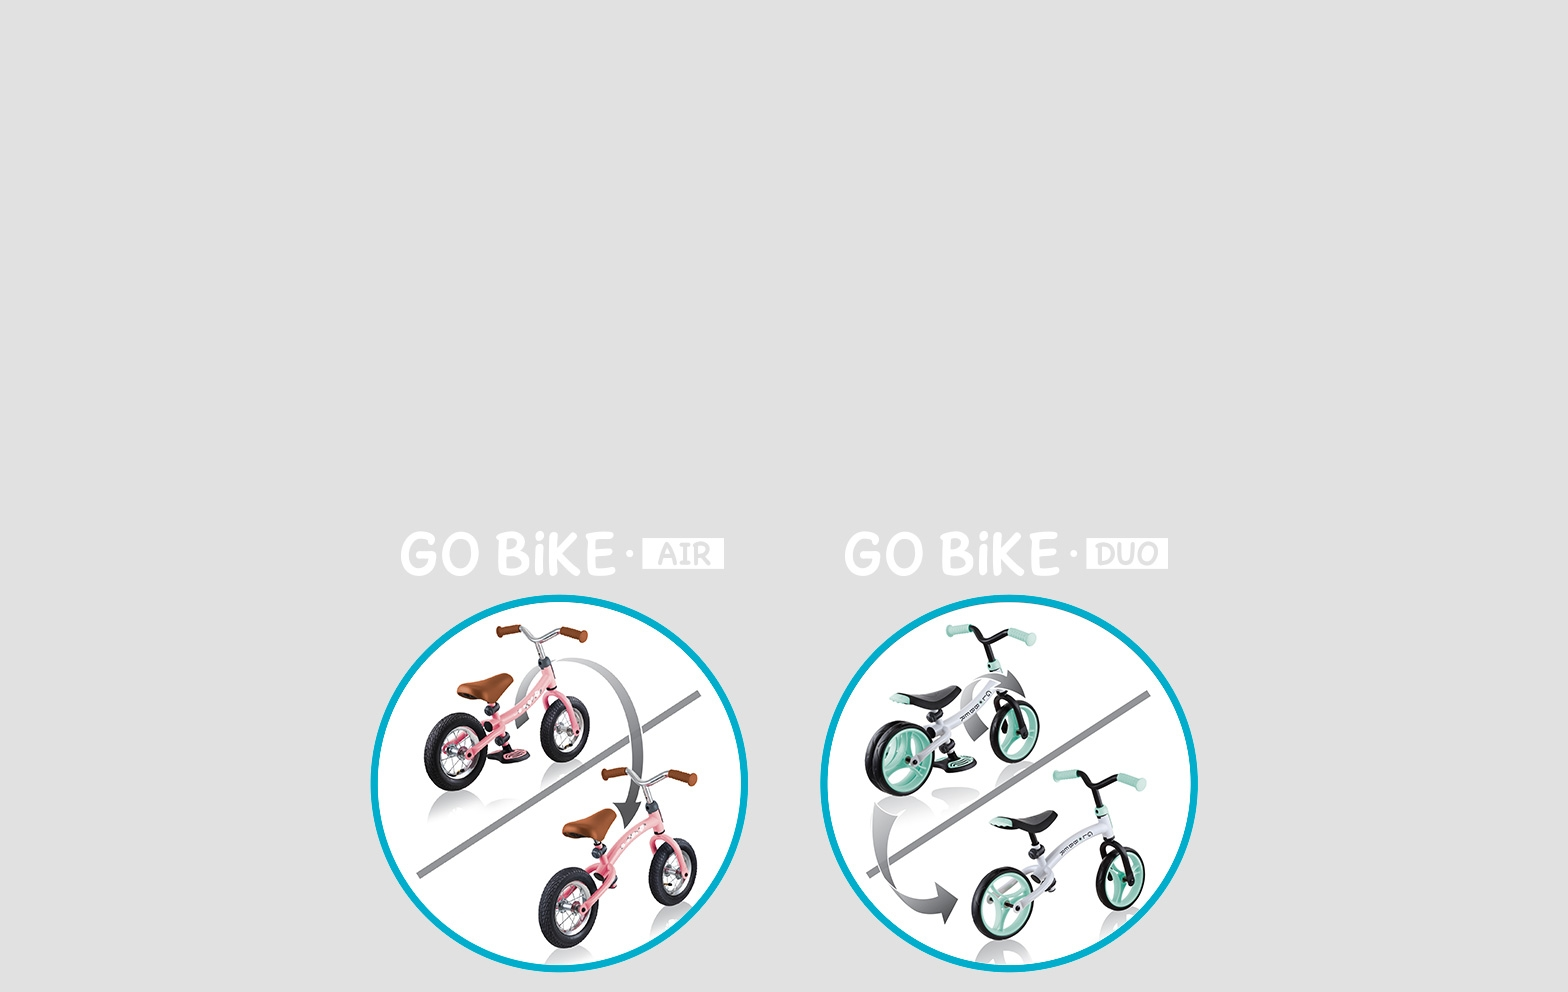 GO-BIKE-best-balance-bike-for-toddlers-and-kids-with-innovative-design